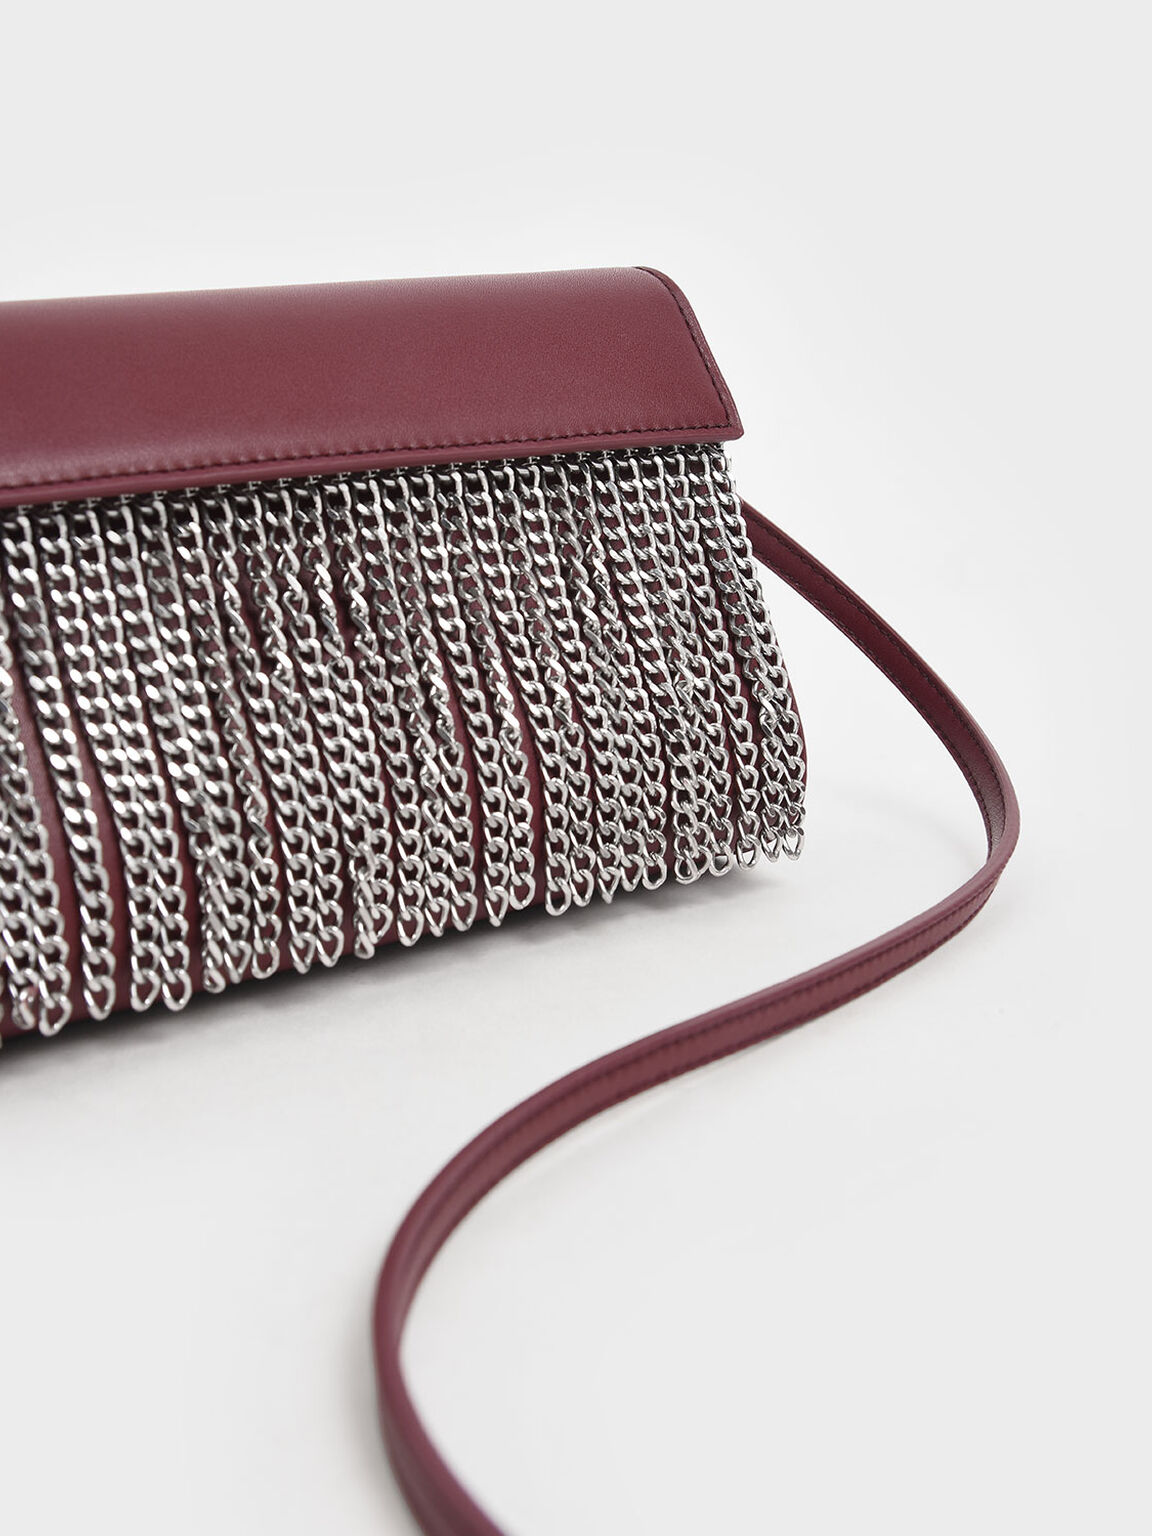 Chain Fringe Clutch, Burgundy, hi-res